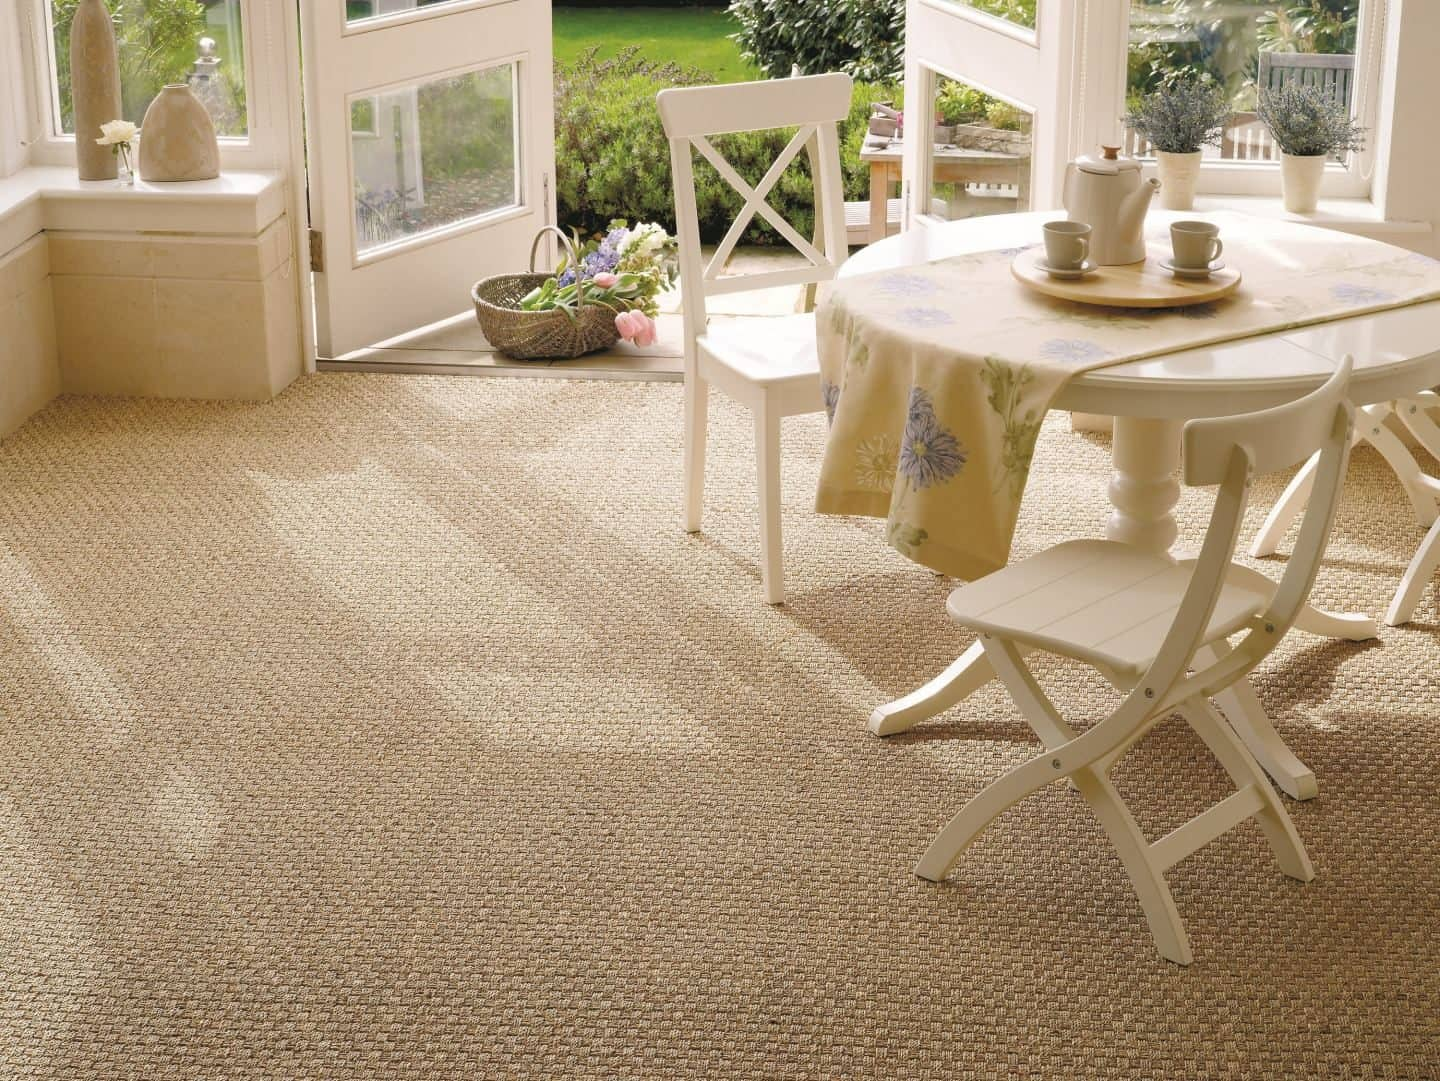 Kersaint Cobb - Seagrass, Basketweave - Natural Flooring